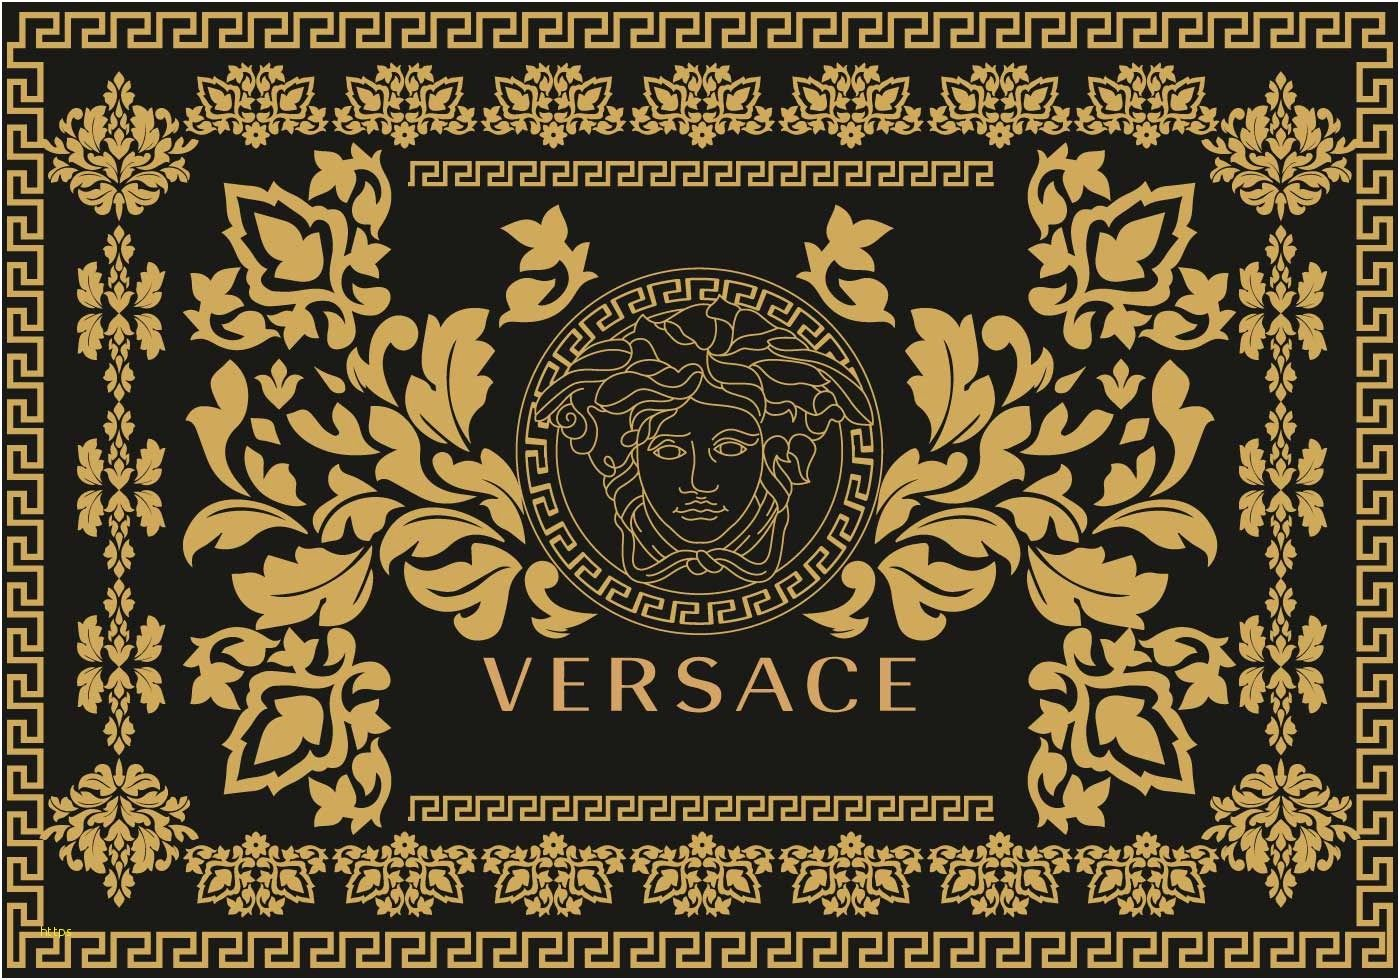 Versace Desktop Wallpapers On Wallpaperdog